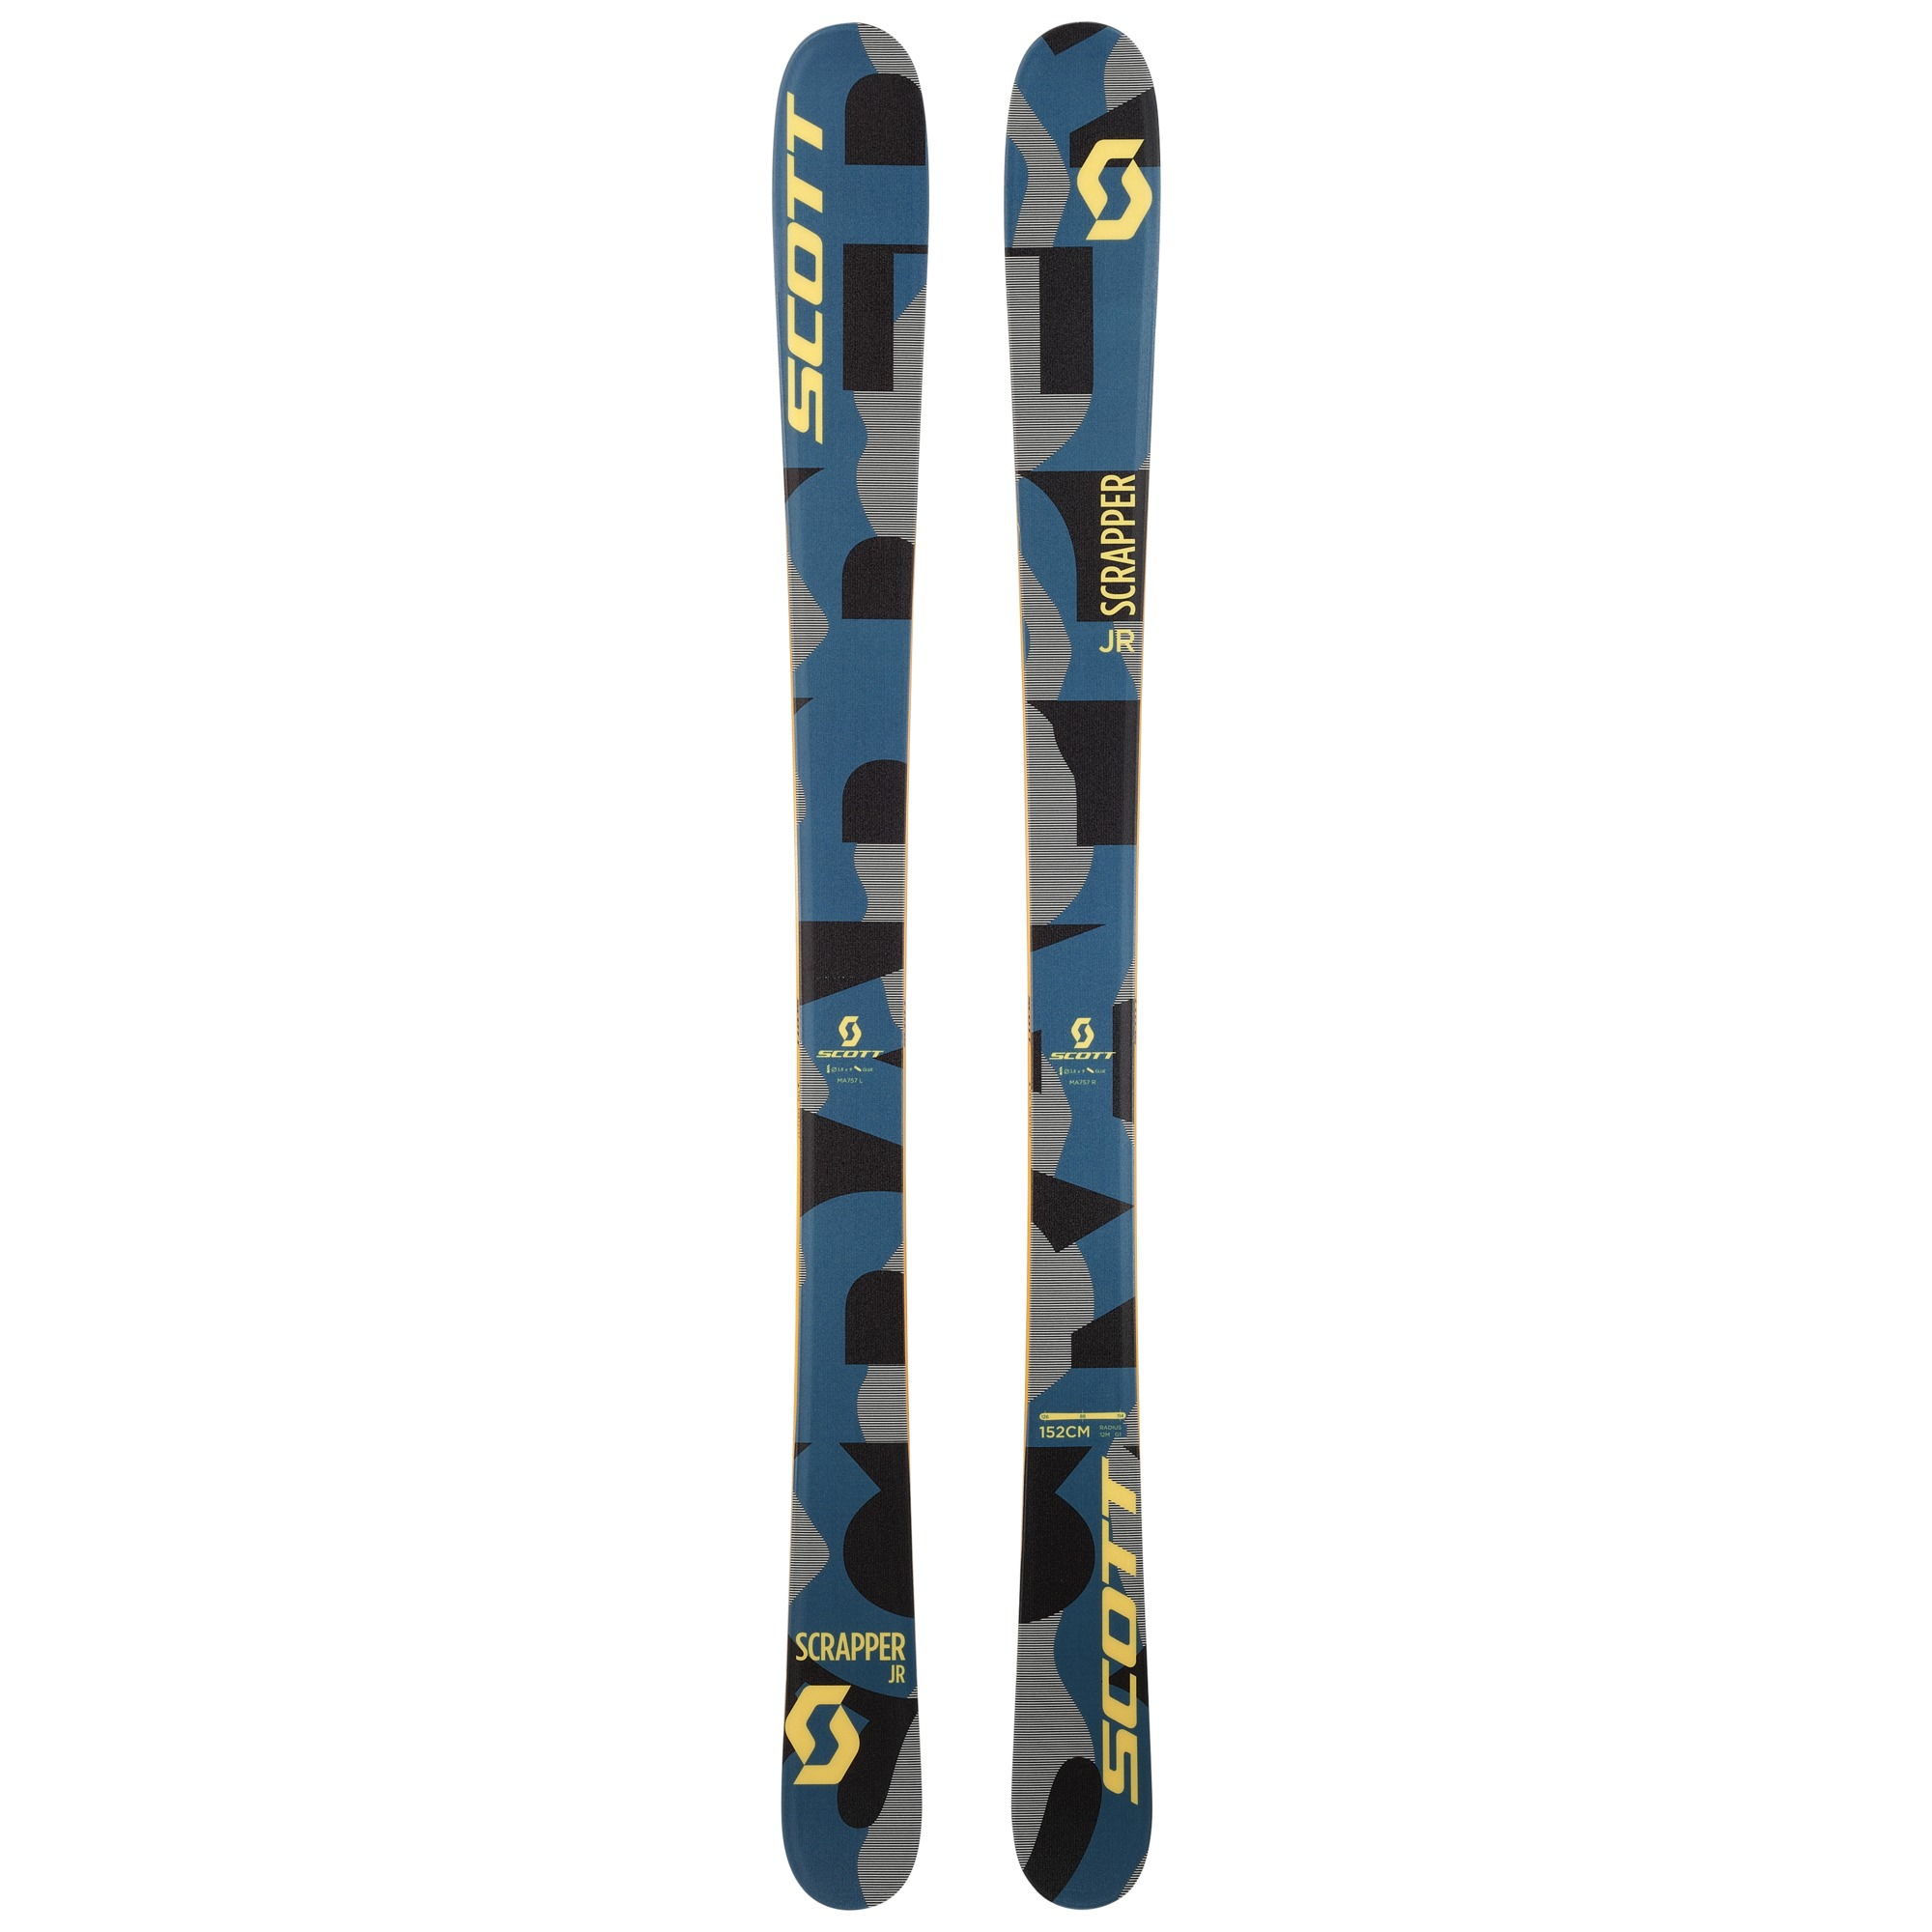 SCOTT Jr Scrapper Junior Ski